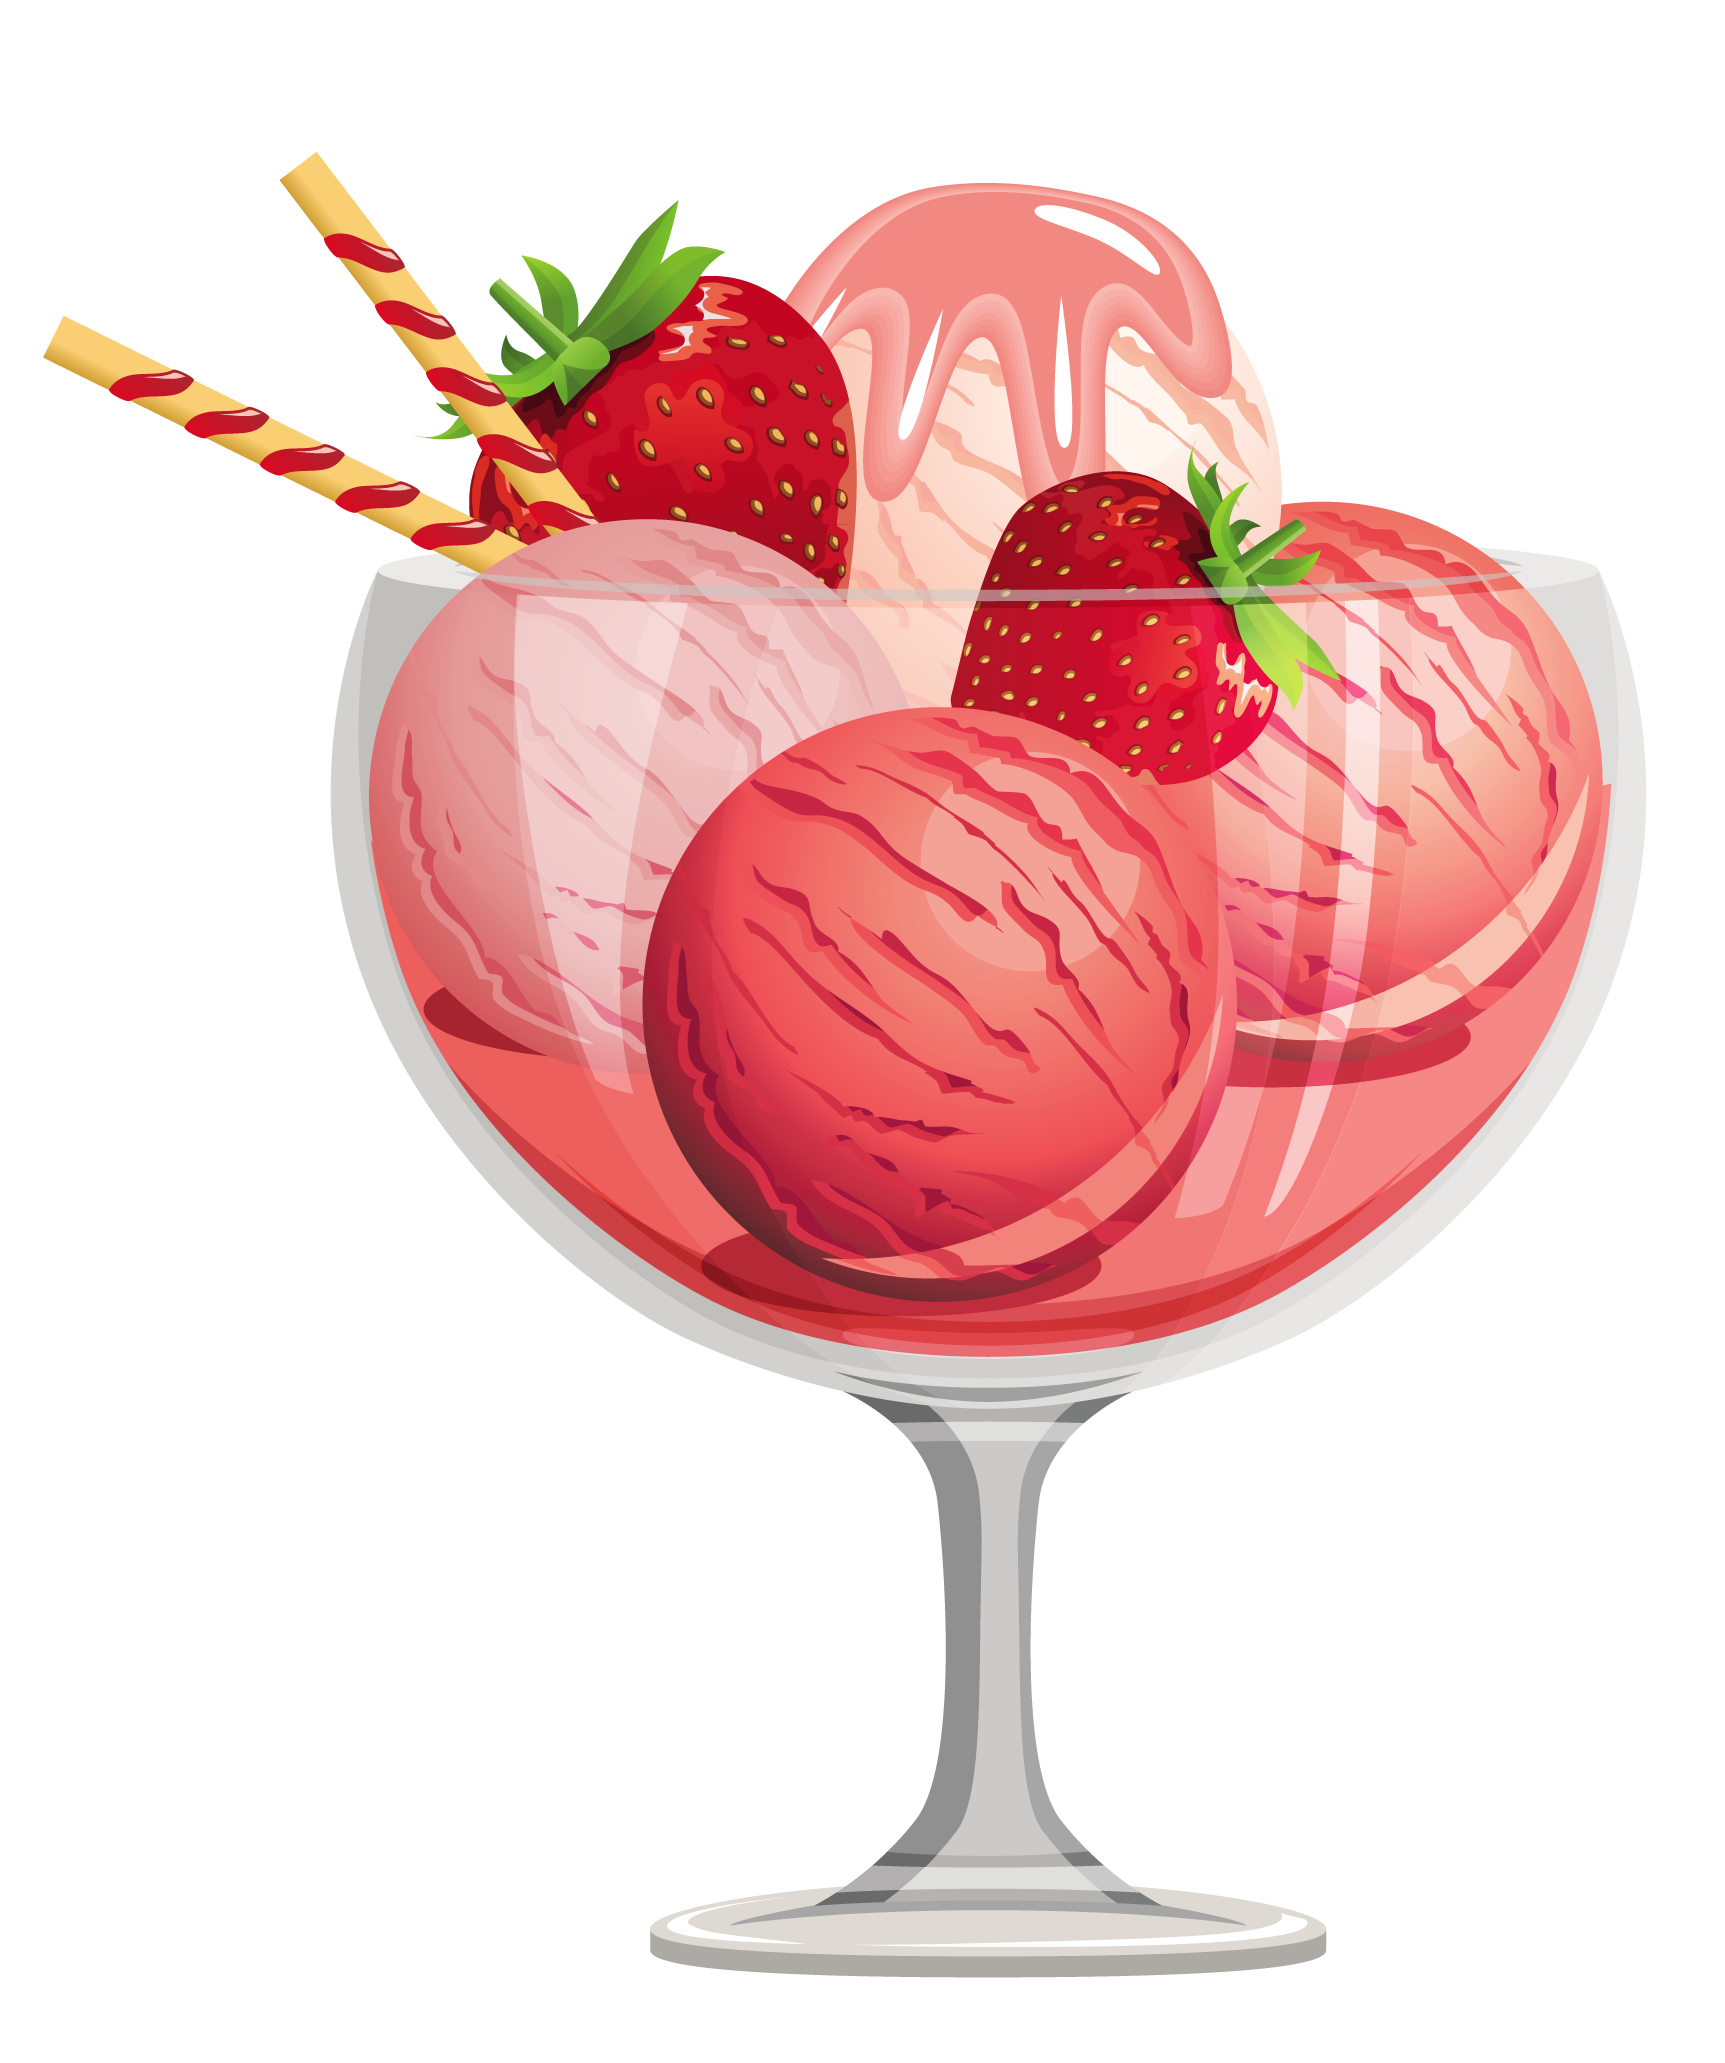 Free clip art sundae. Glasses clipart ice cream